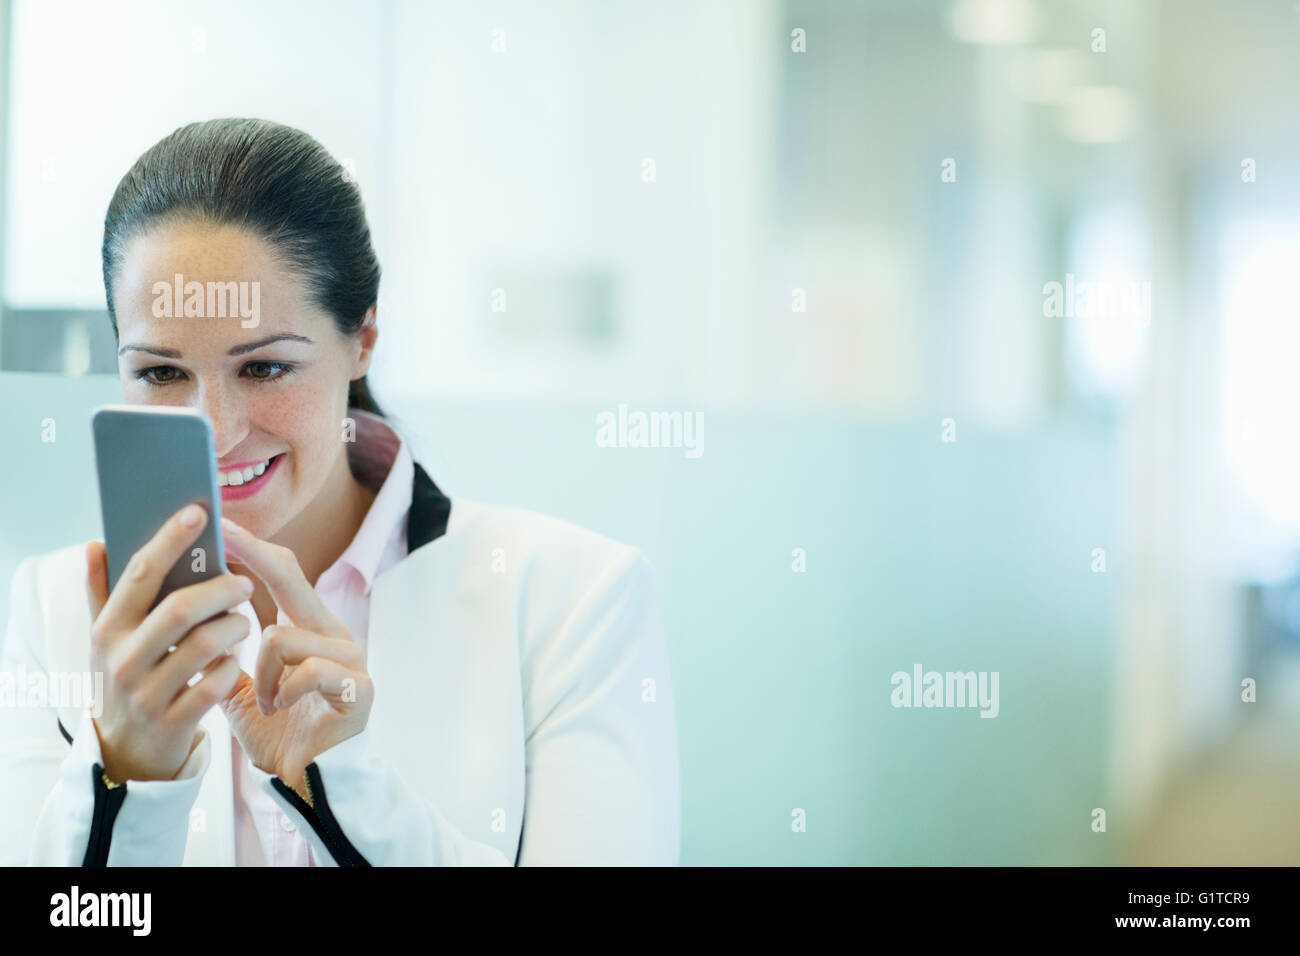 Smiling businesswoman using cell phone in office corridor - Stock Image